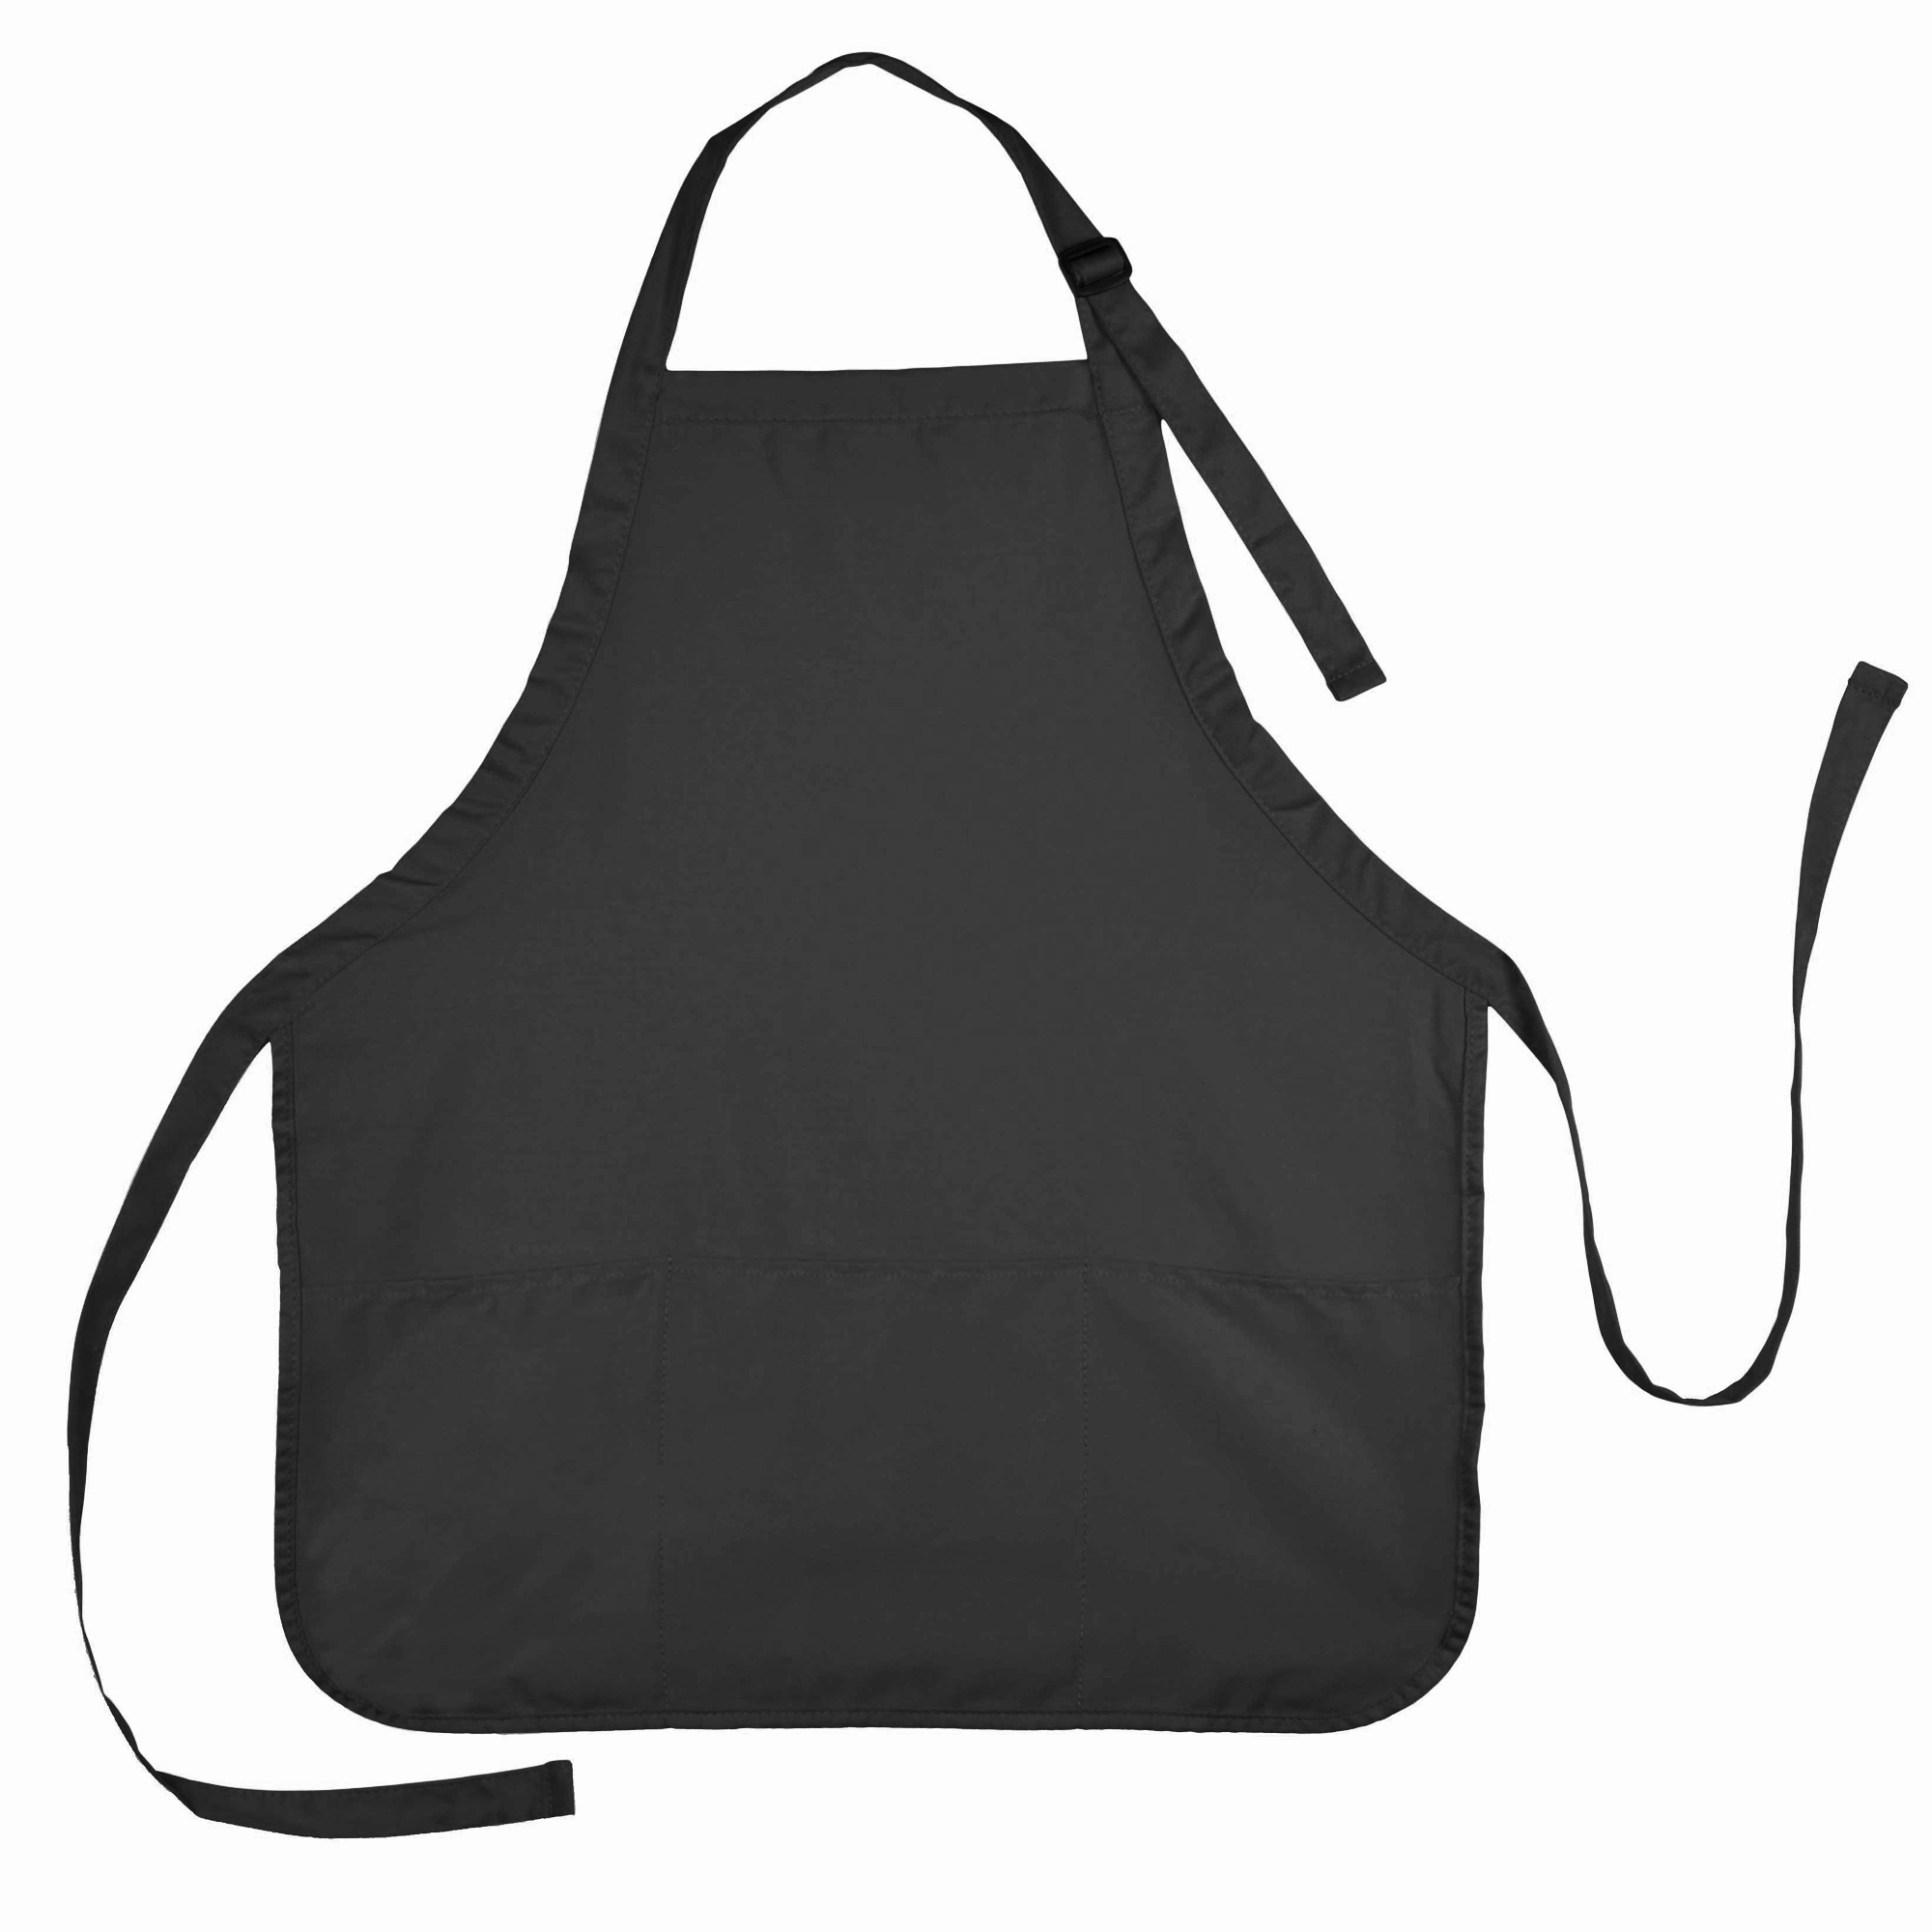 DALIX Apron Commercial Restaurant Home Bib Spun Poly Cotton Kitchen Aprons (3 Pockets) in Black